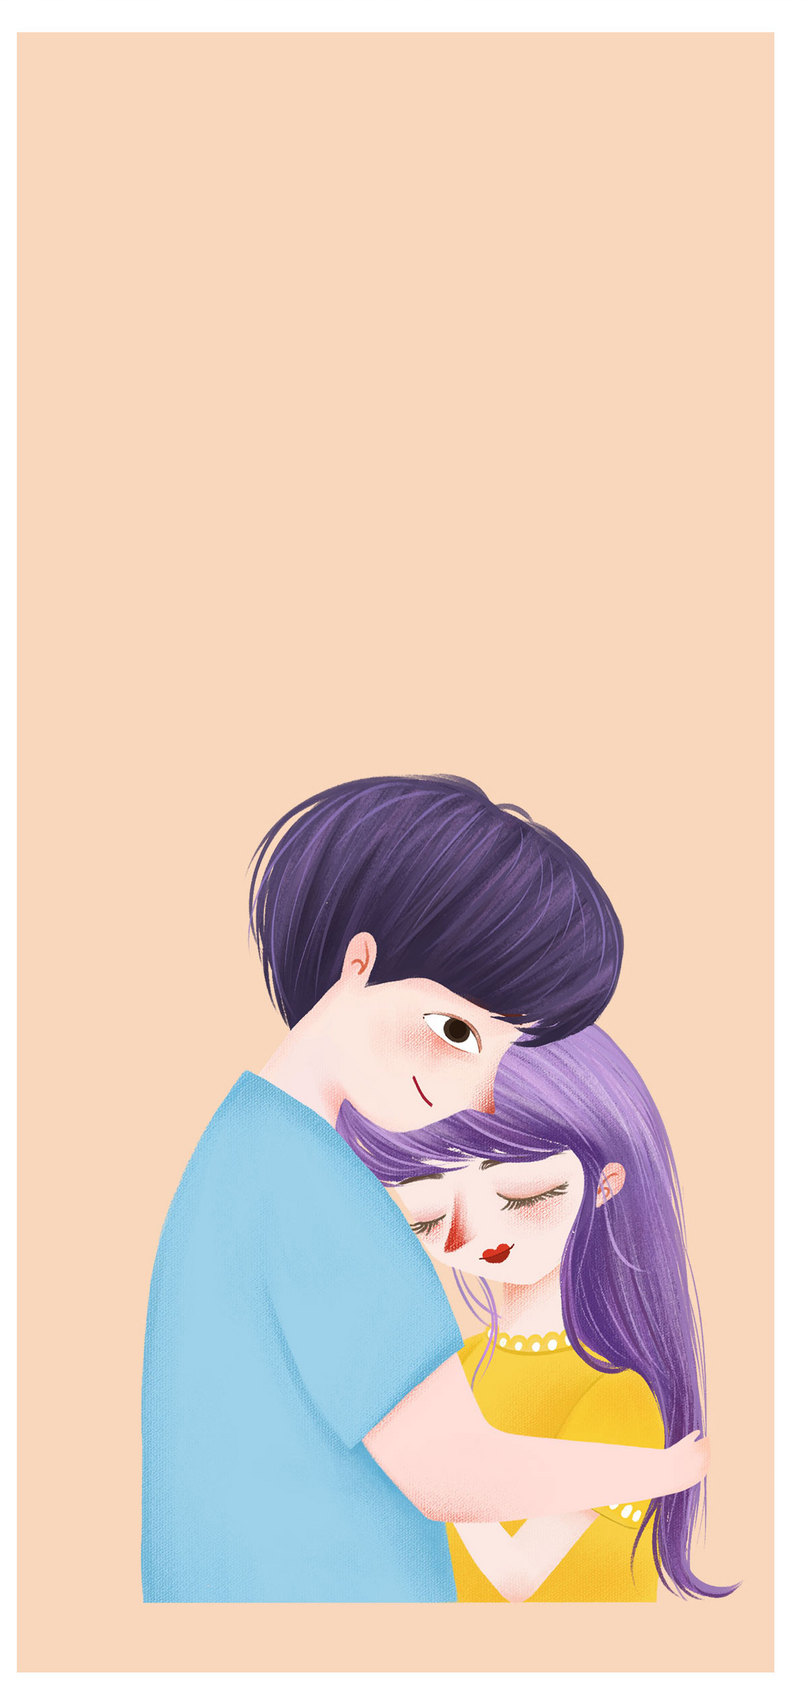 Couple Cartoon Mobile Phone Wallpaper Backgrounds Images